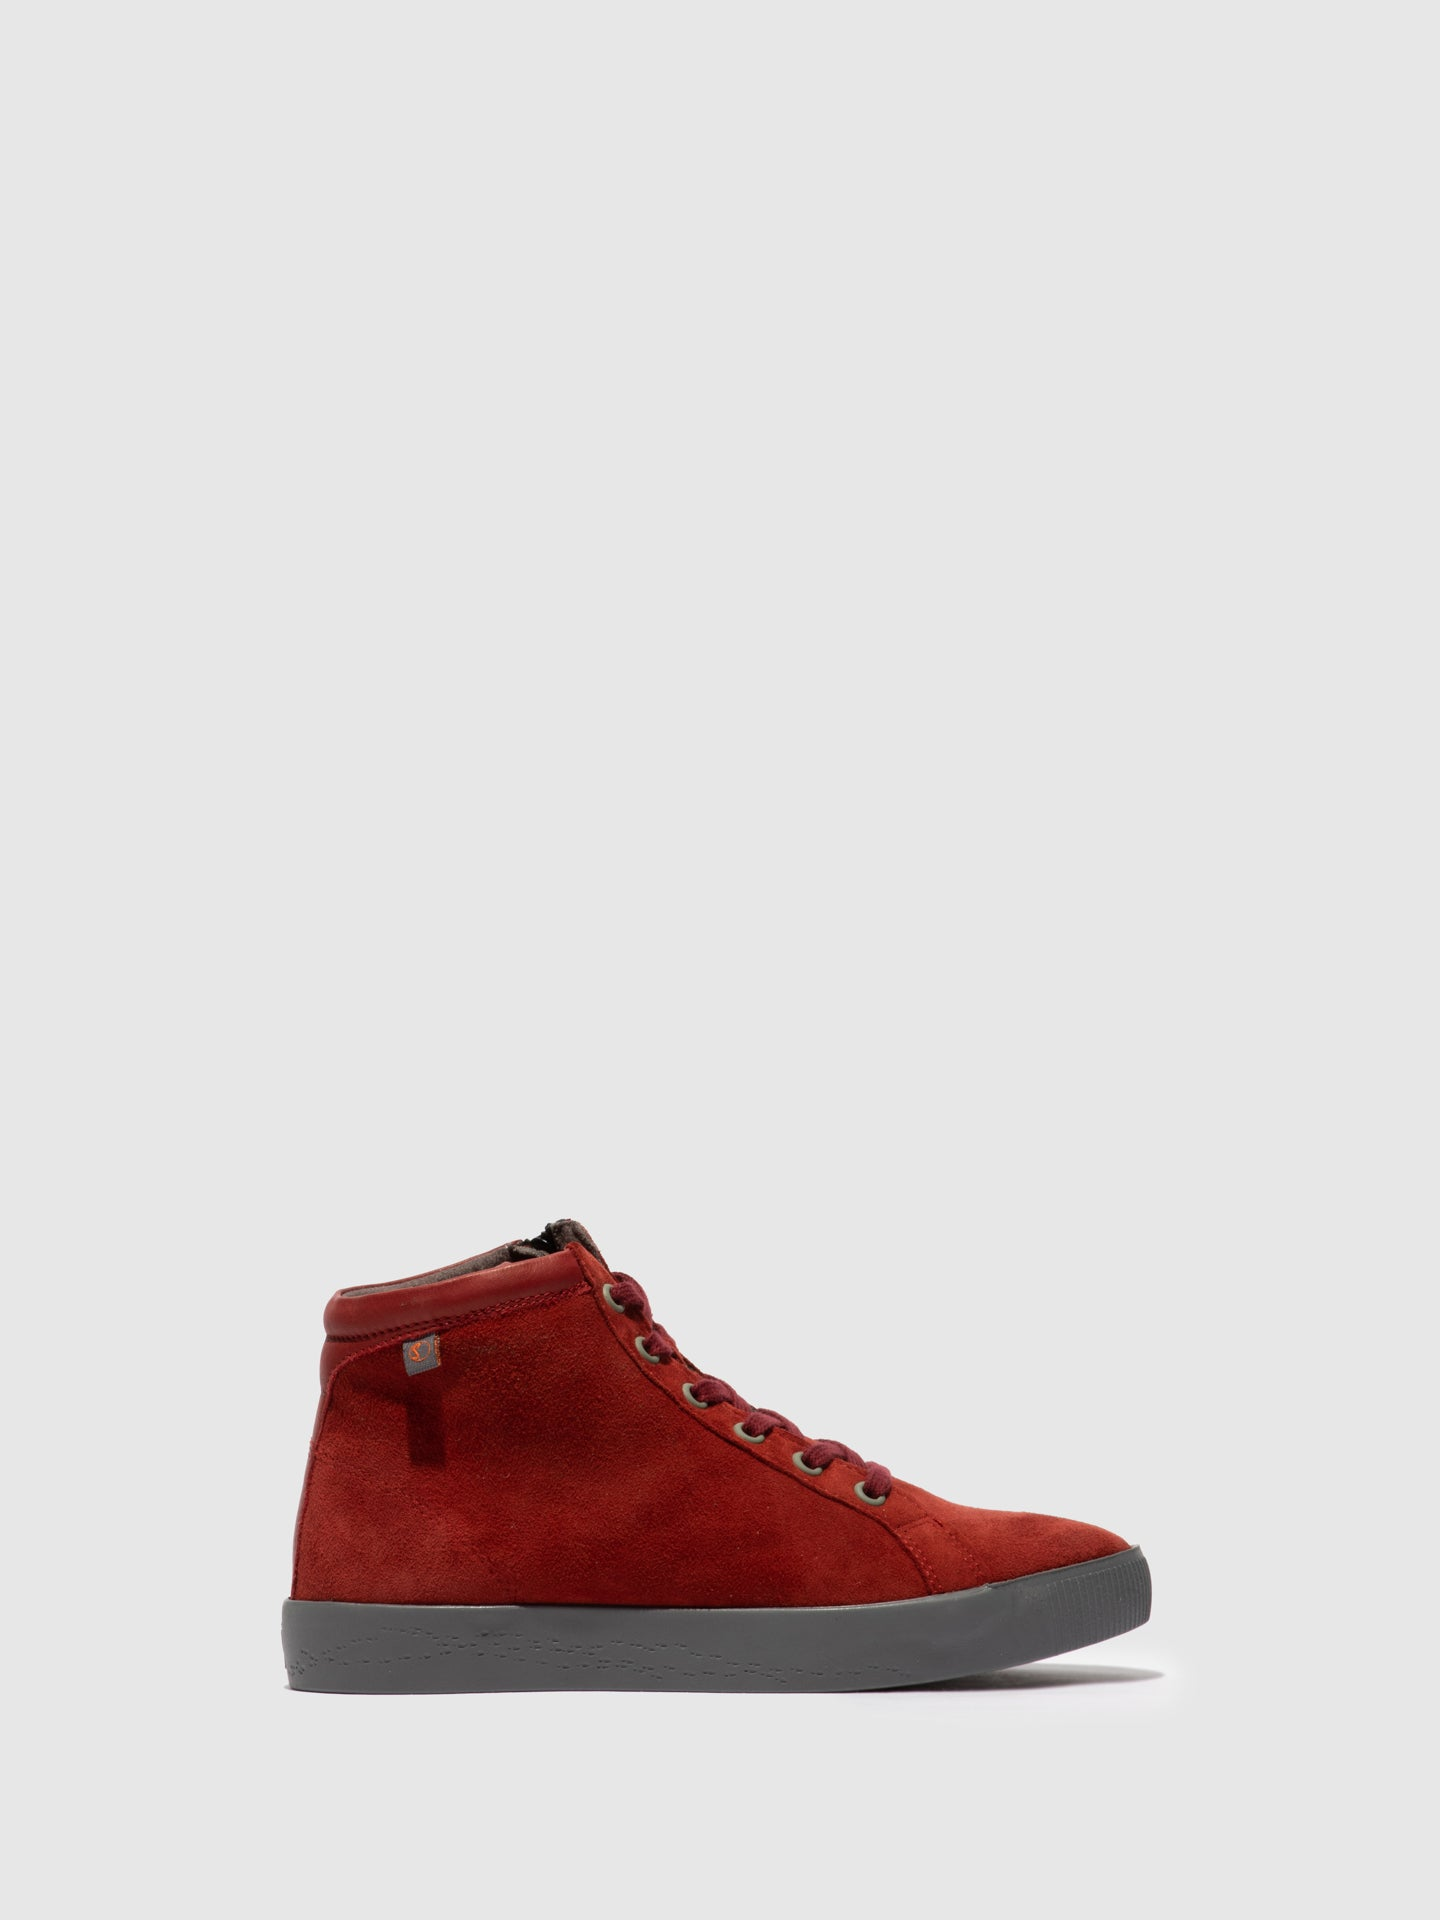 Softinos Zip Up Ankle Boots SAGE602SOF RED